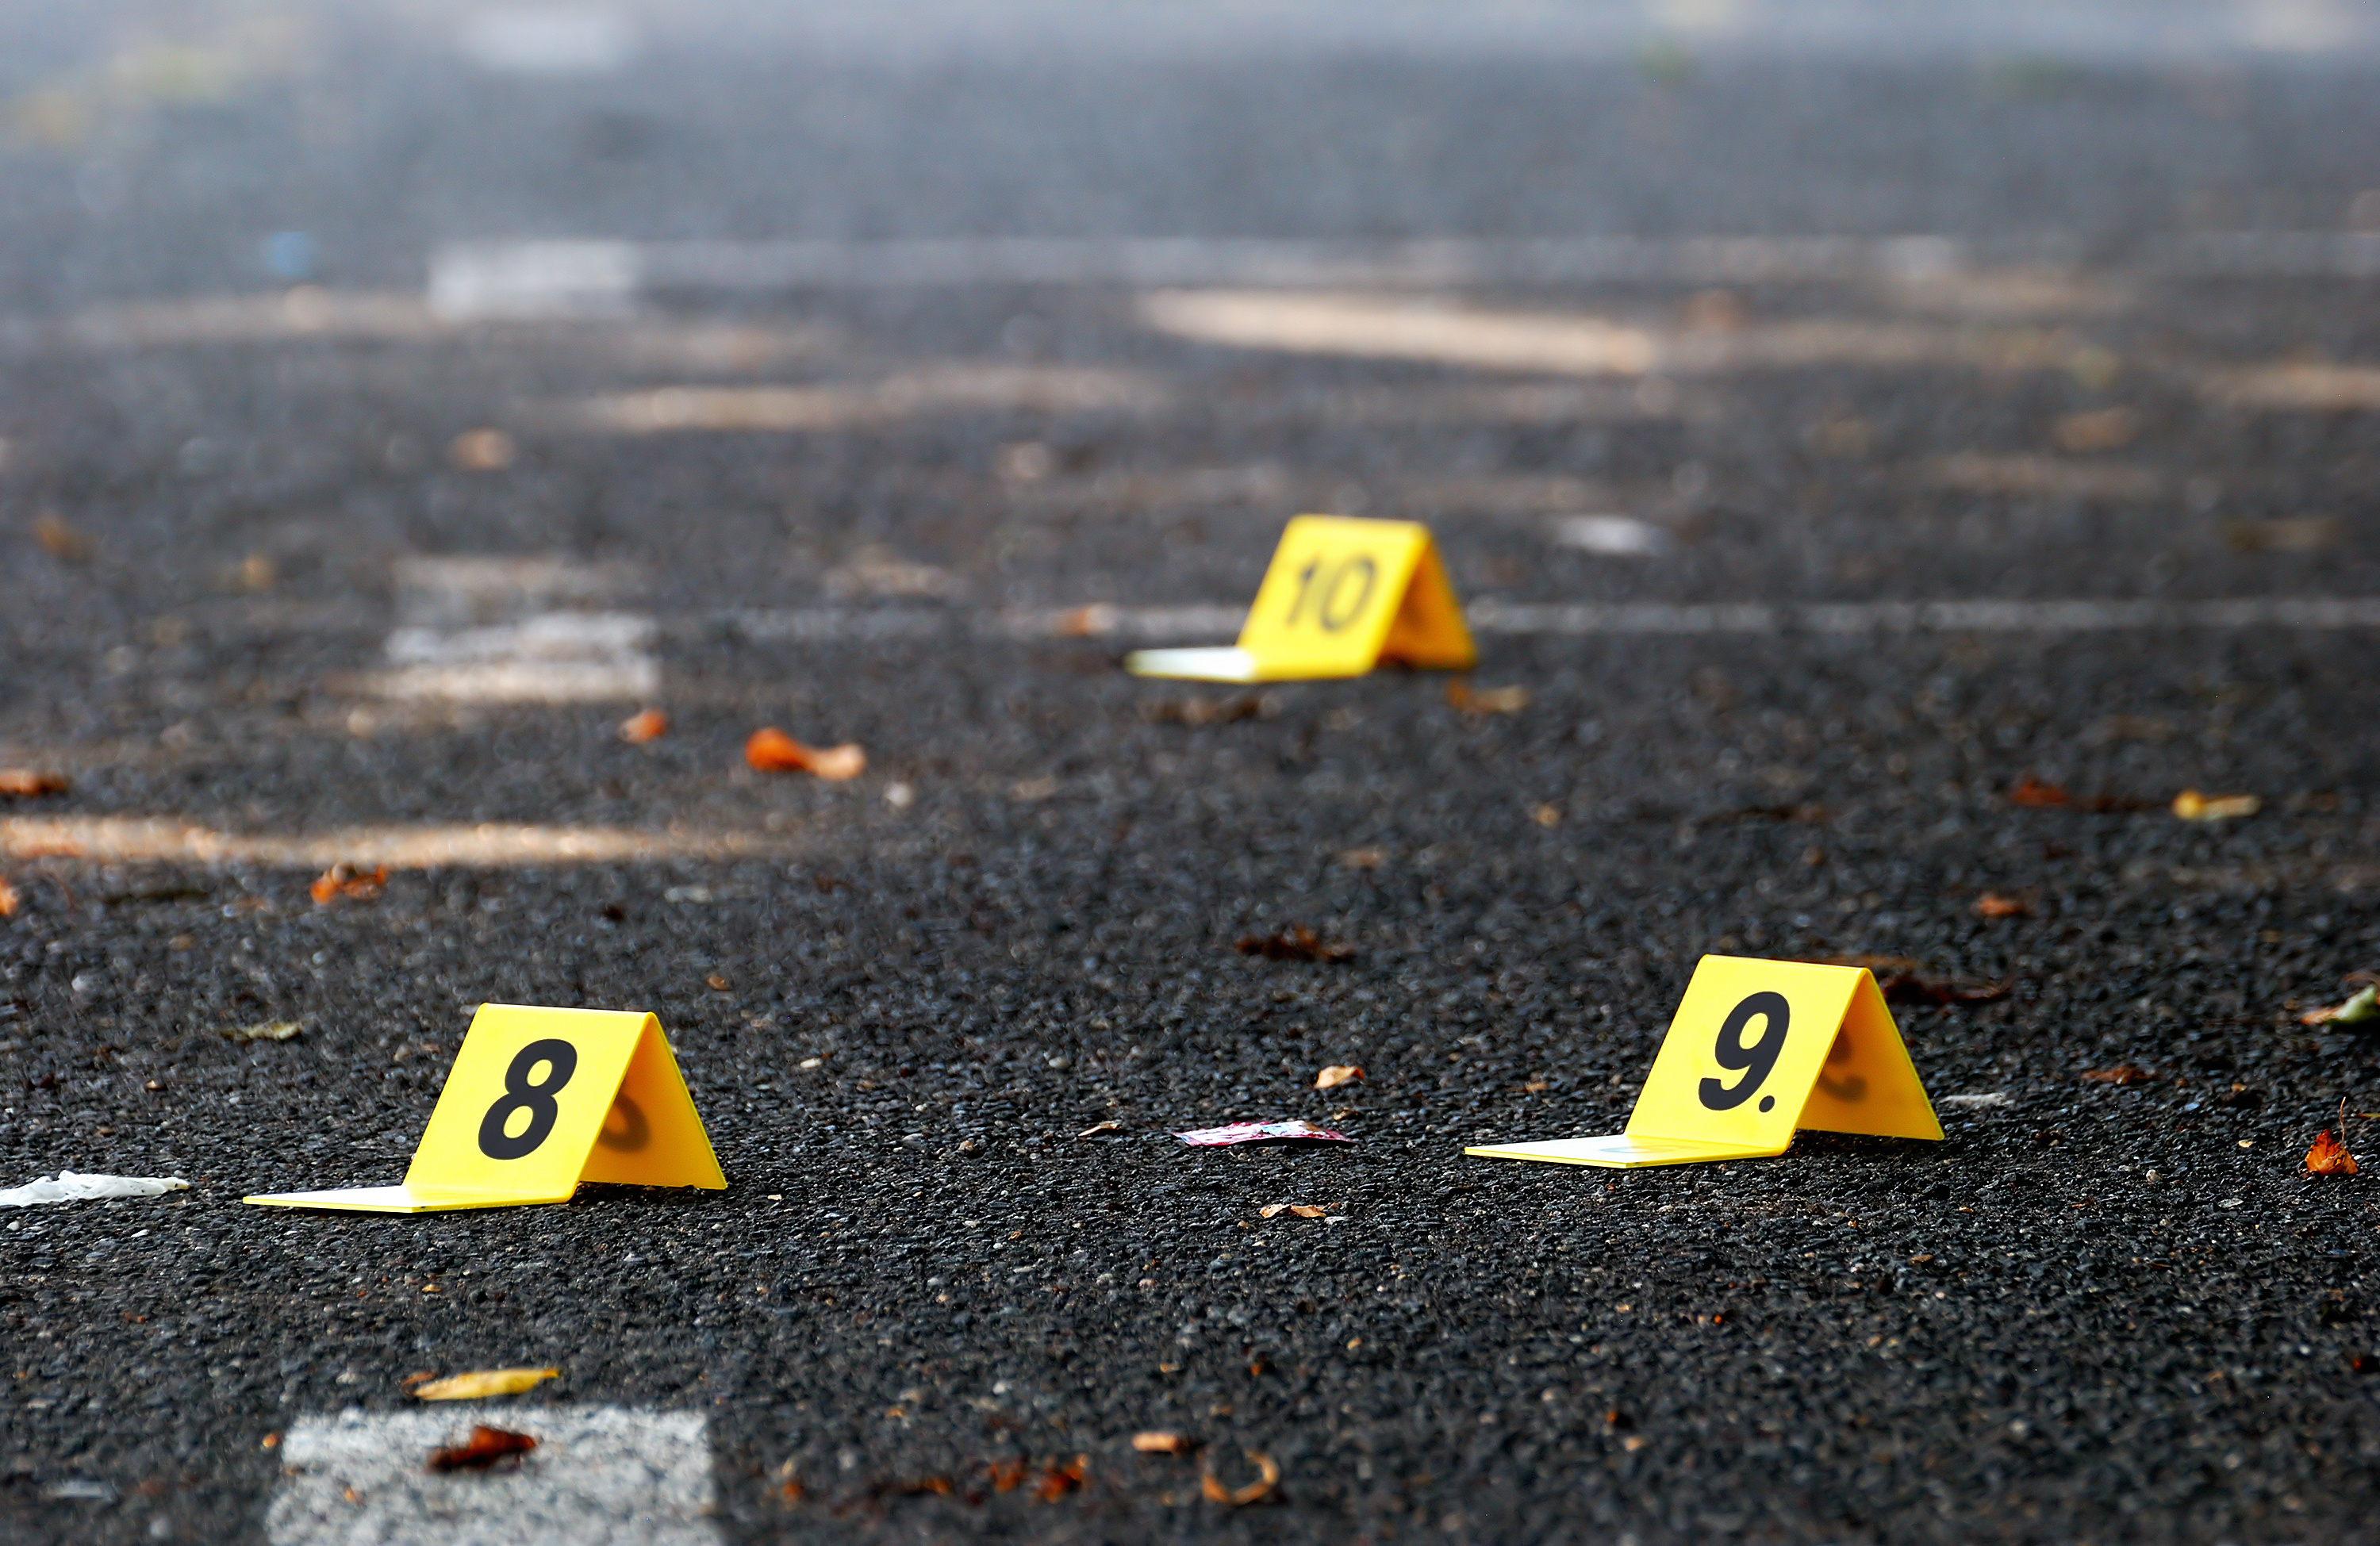 A man was shot to death Jan. 26, 2020, in Back of the Yards on the South Side.